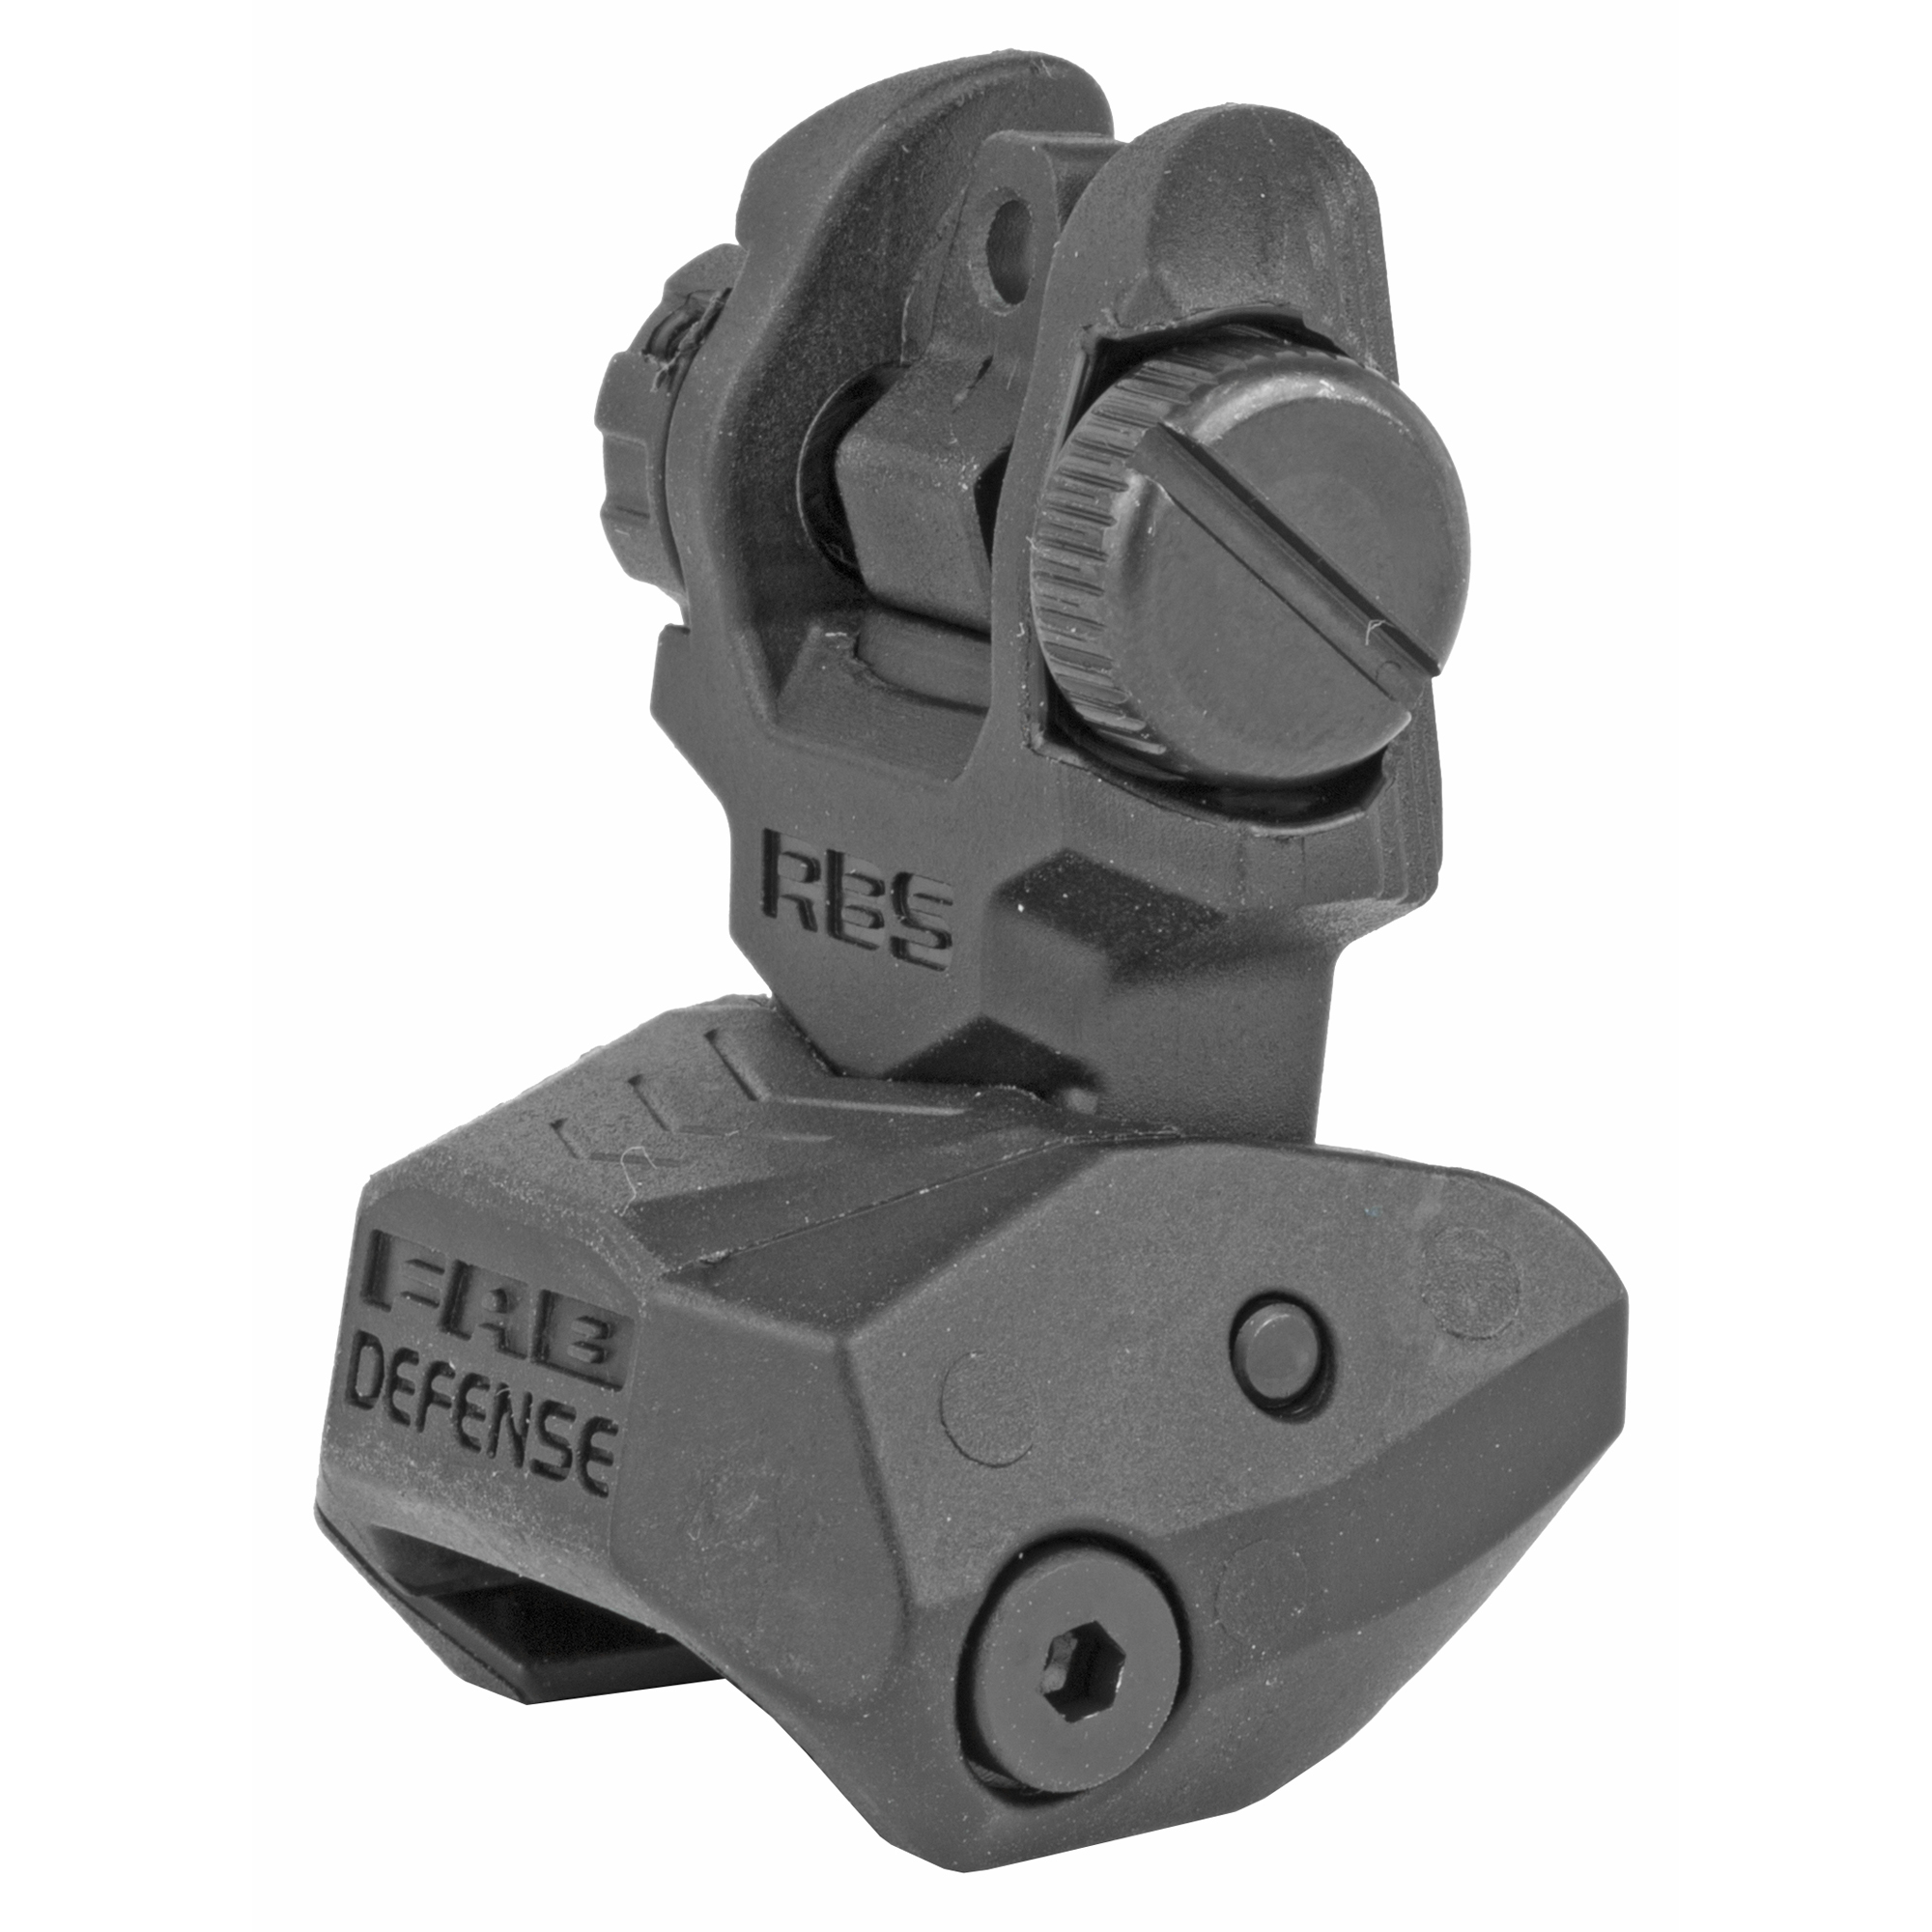 "The RBS is an advanced"" dual aperture"" durable and low-profile auxiliary rear sight. It can be used with any front sight and was designed for more accurate aiming and faster target acquisition. Windage is easily and quickly adjusted without tools. RBS is readily mounted on any 1913 Picatinny rail"" making it ideal for use on M4 / AR-15 / M-16 platforms and on the FAB Defense(R) K.P.O.S."